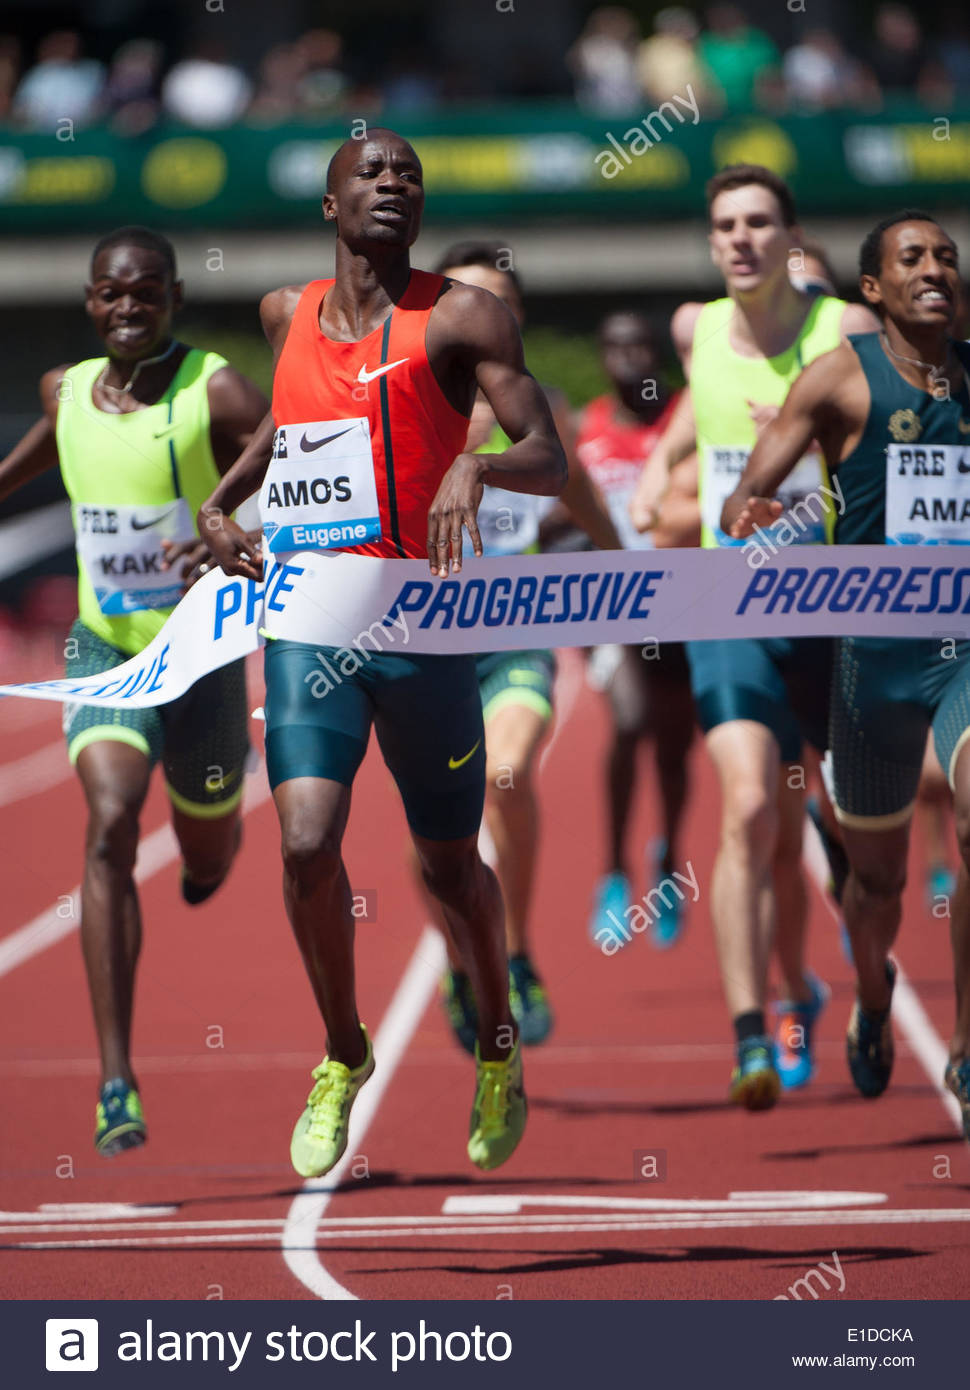 Eugene, OR, USA. 31st May, 2014. Nijel Amos of Botswana wins the Men's 800m at the 2014 Prefontaine Classic with a time of 1:43.63. The Prefontaine Classic, the longest-running international invitational meet in the United States, turns 40 this year.The 2014 elite competition held in Eugene, Oregon at the University of Oregon's historic Hayward Field is in it's 5th year hosting the IAAF's Diamond League event. Credit:  Ken Hawkins/ZUMAPRESS.com/Alamy Live News - Stock Image